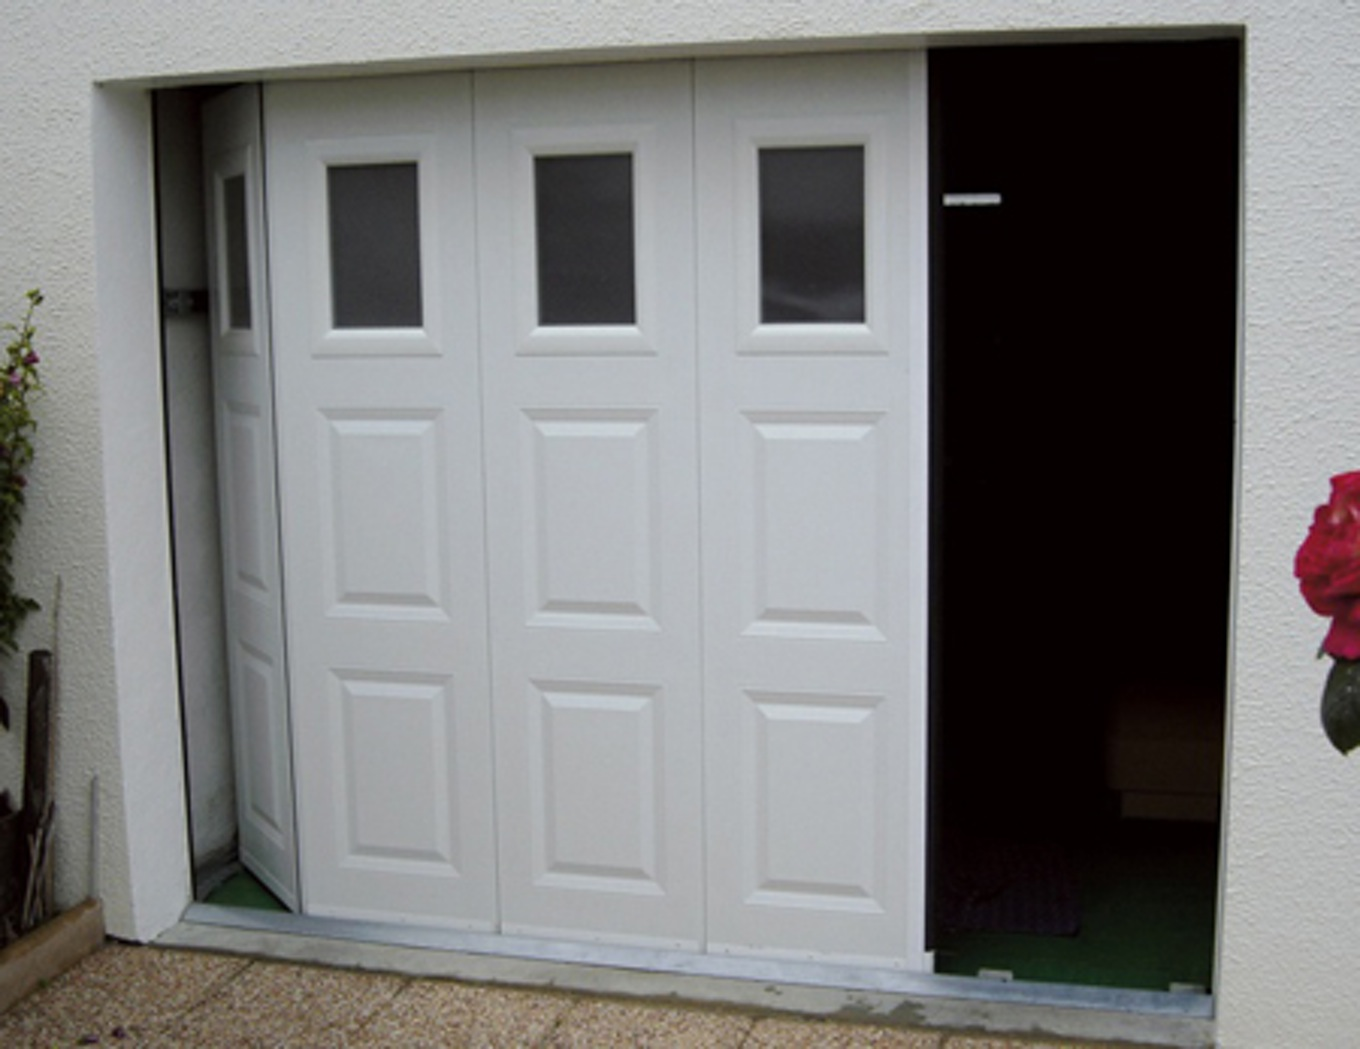 porte de garage bois coulissante brico depot isolation idees With porte de garage coulissante avec porte pvc brico depot